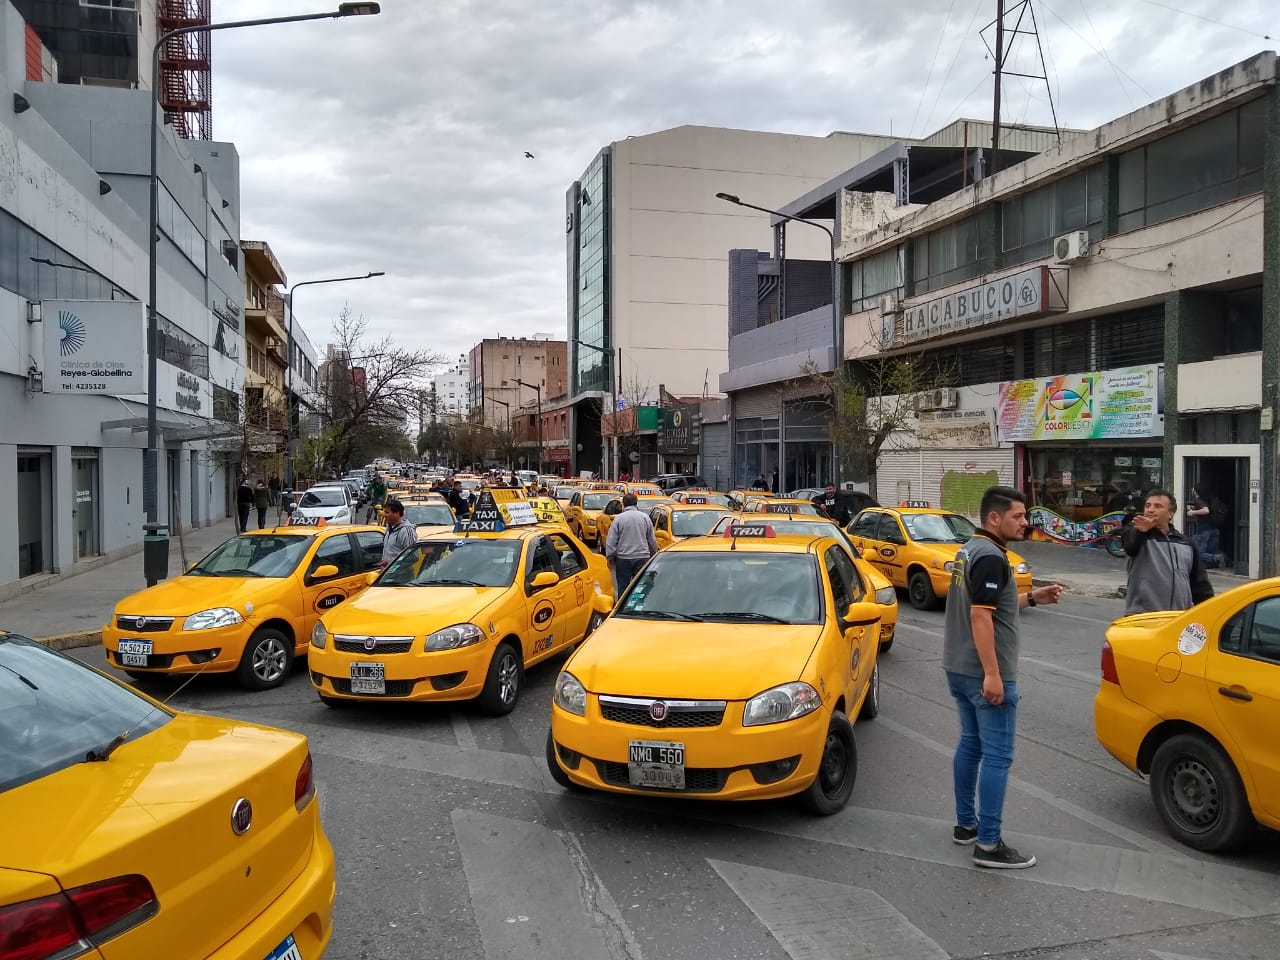 Taxis protesta contra uber by LNM